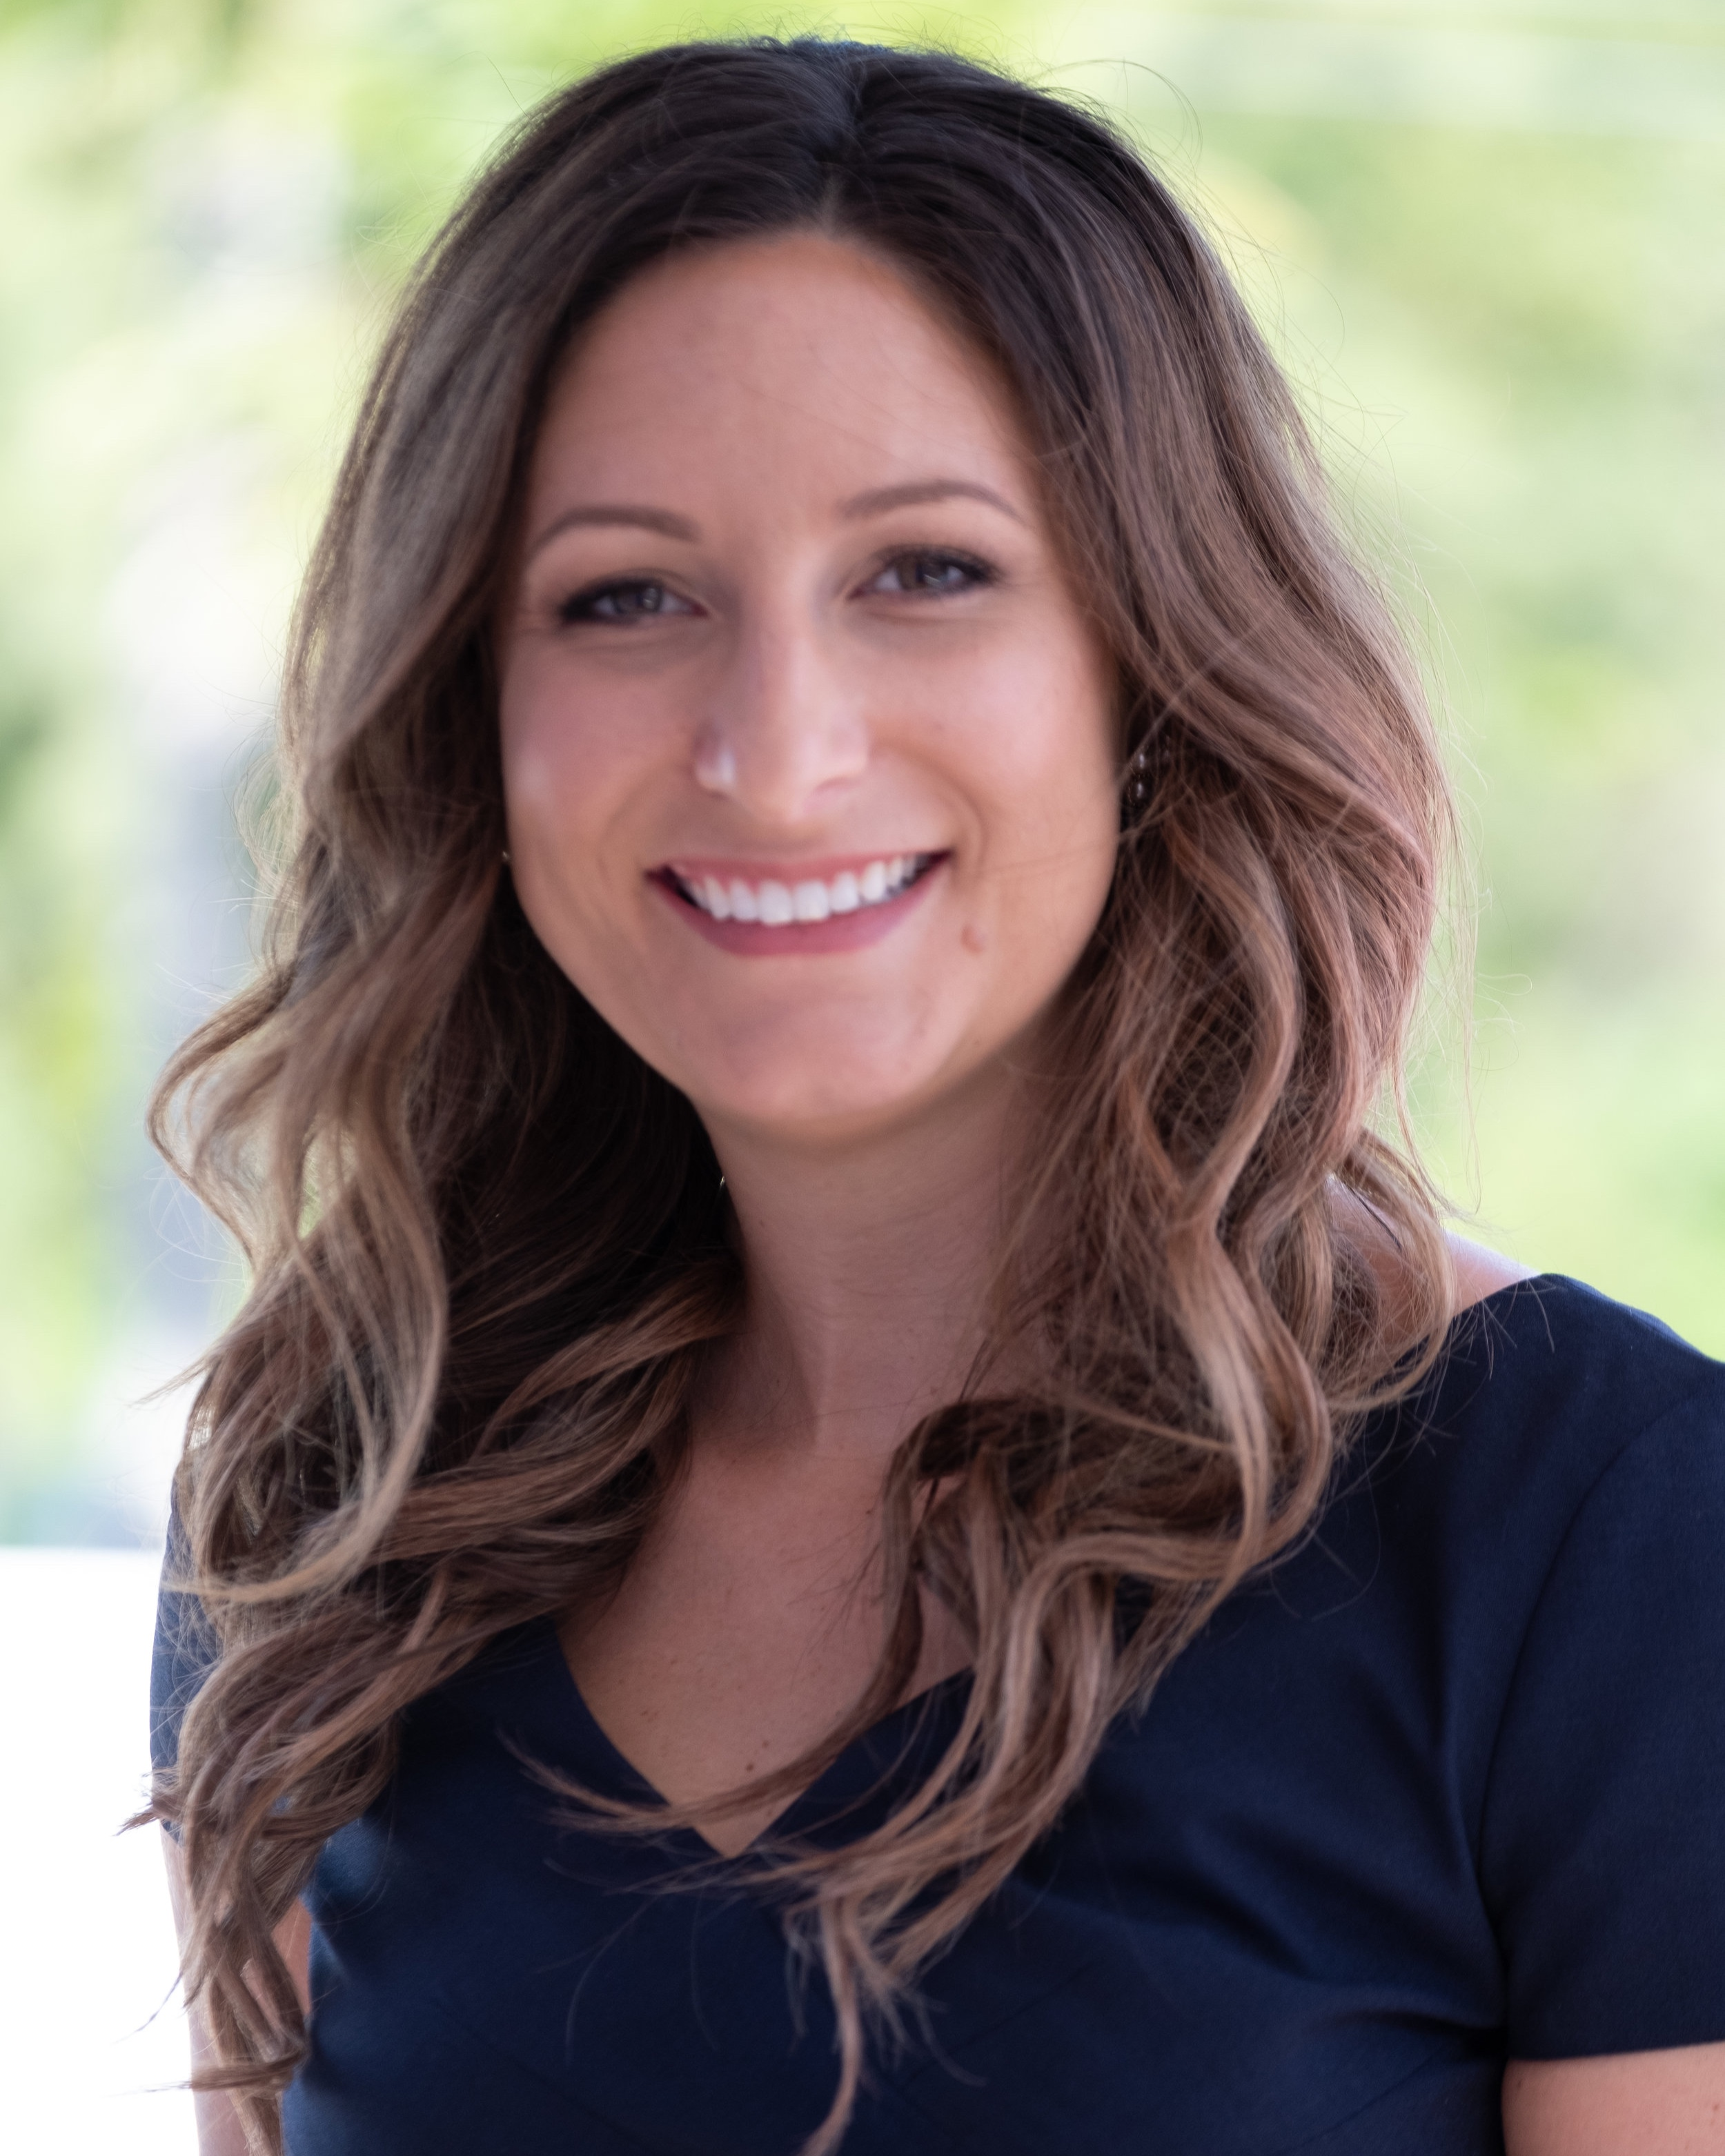 """Jessica M. Lashier - """"I have a family of my own and have helped many clients through this process. I understand the problems faced by families and strive to help find practical solutions for my clients."""""""